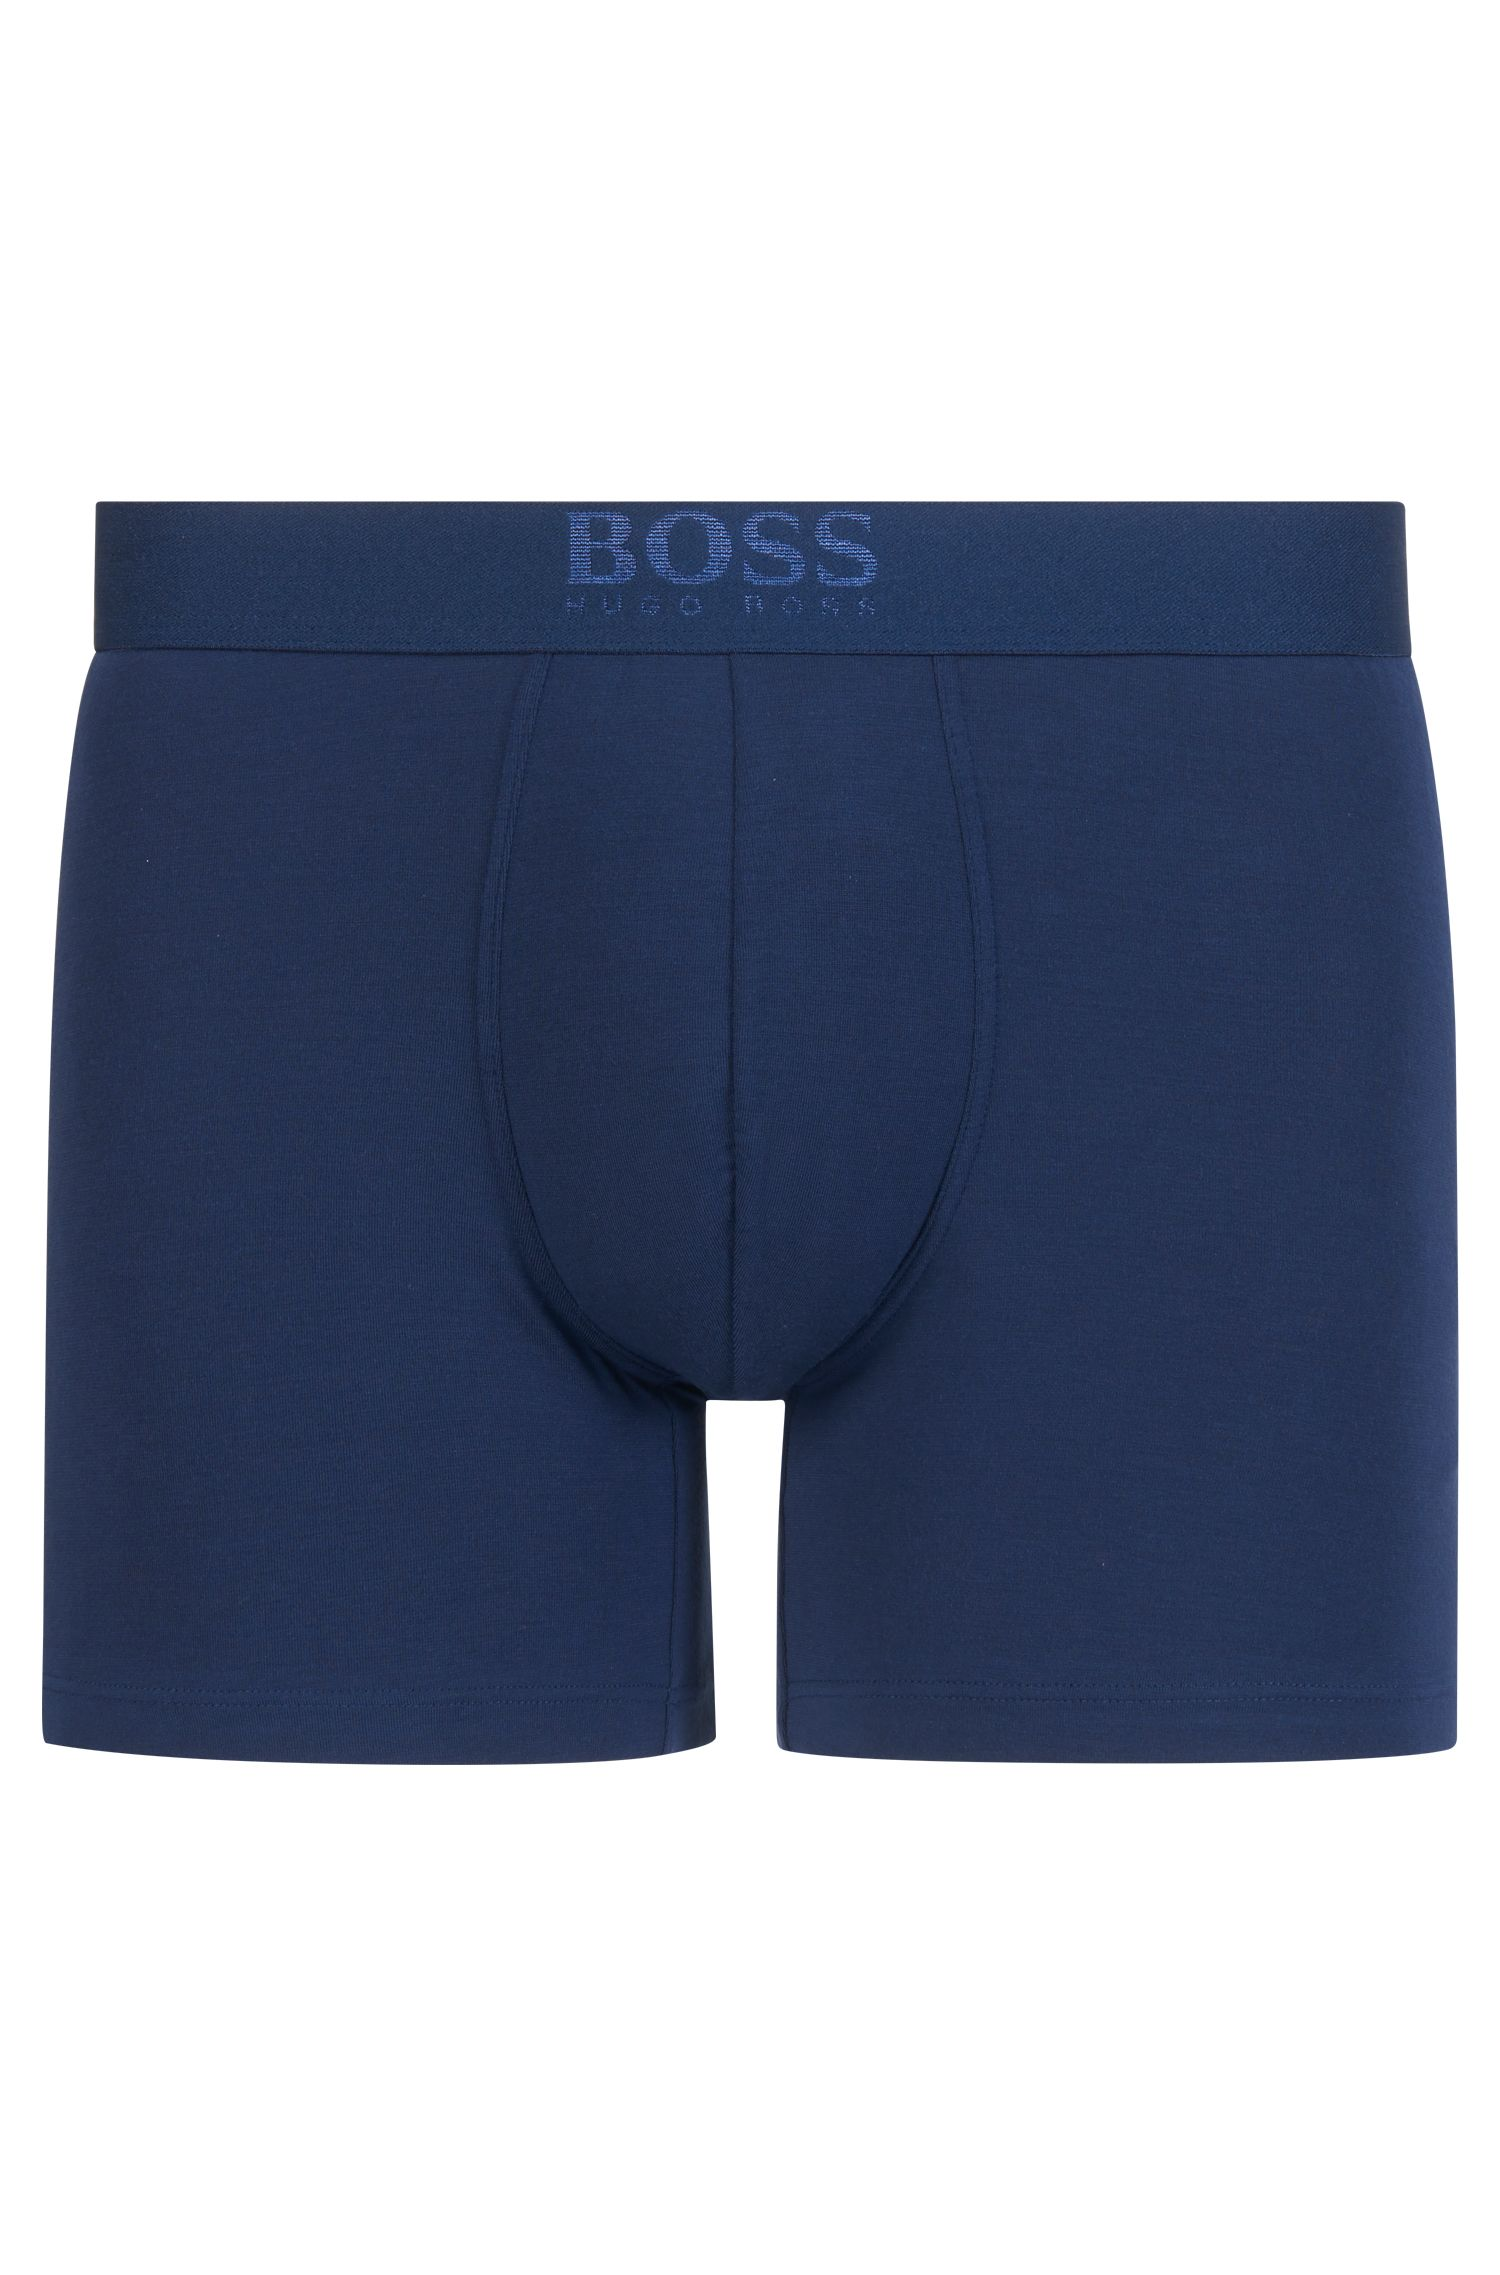 Two-pack of regular-rise boxer briefs, Dark Blue